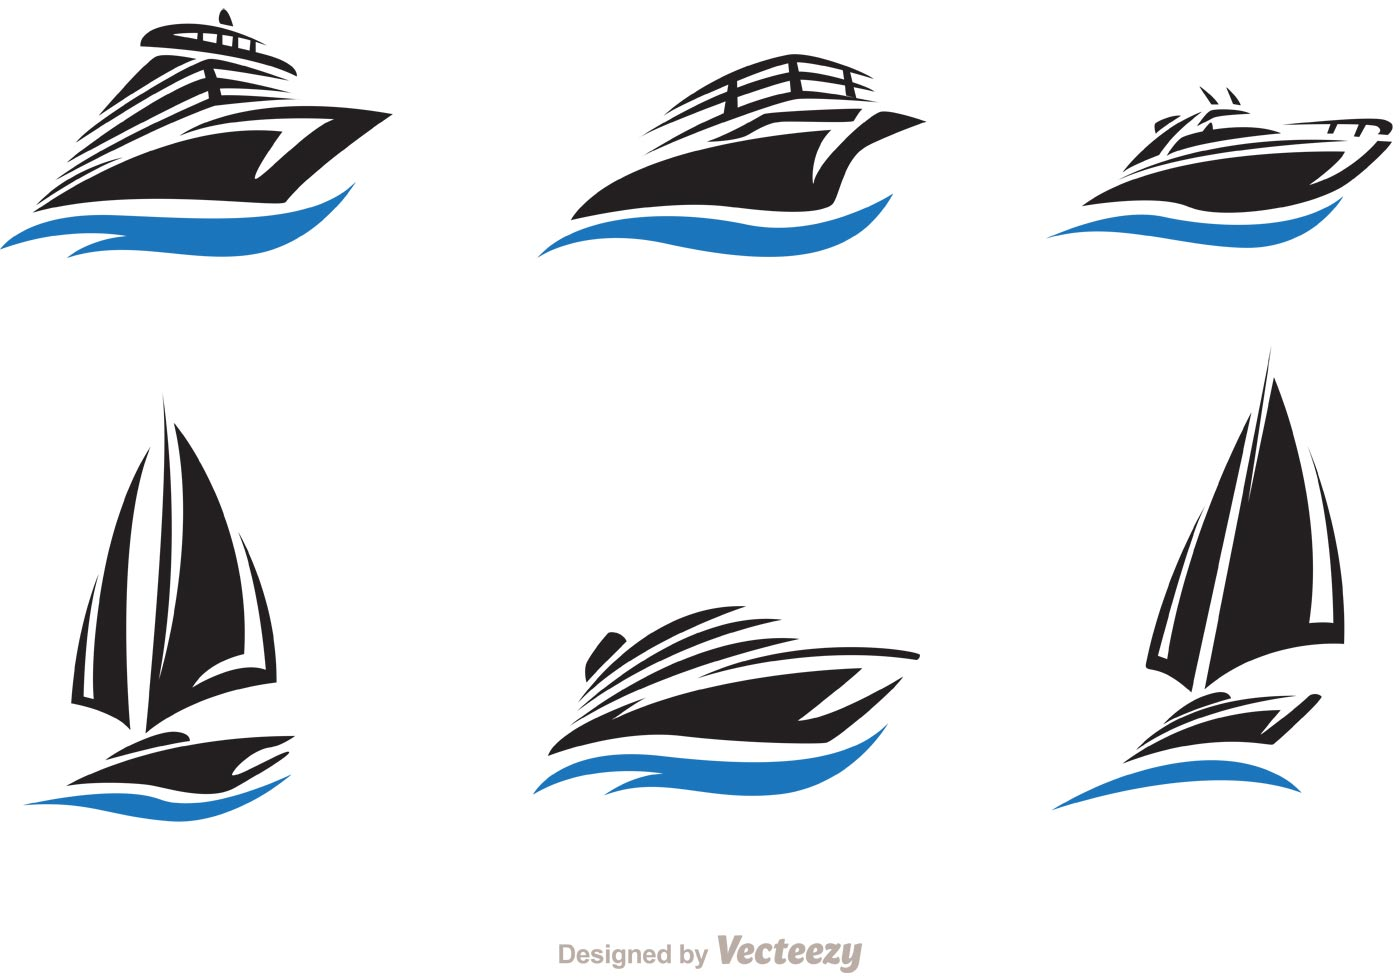 Boat Free Vector Art - (5507 Free Downloads)